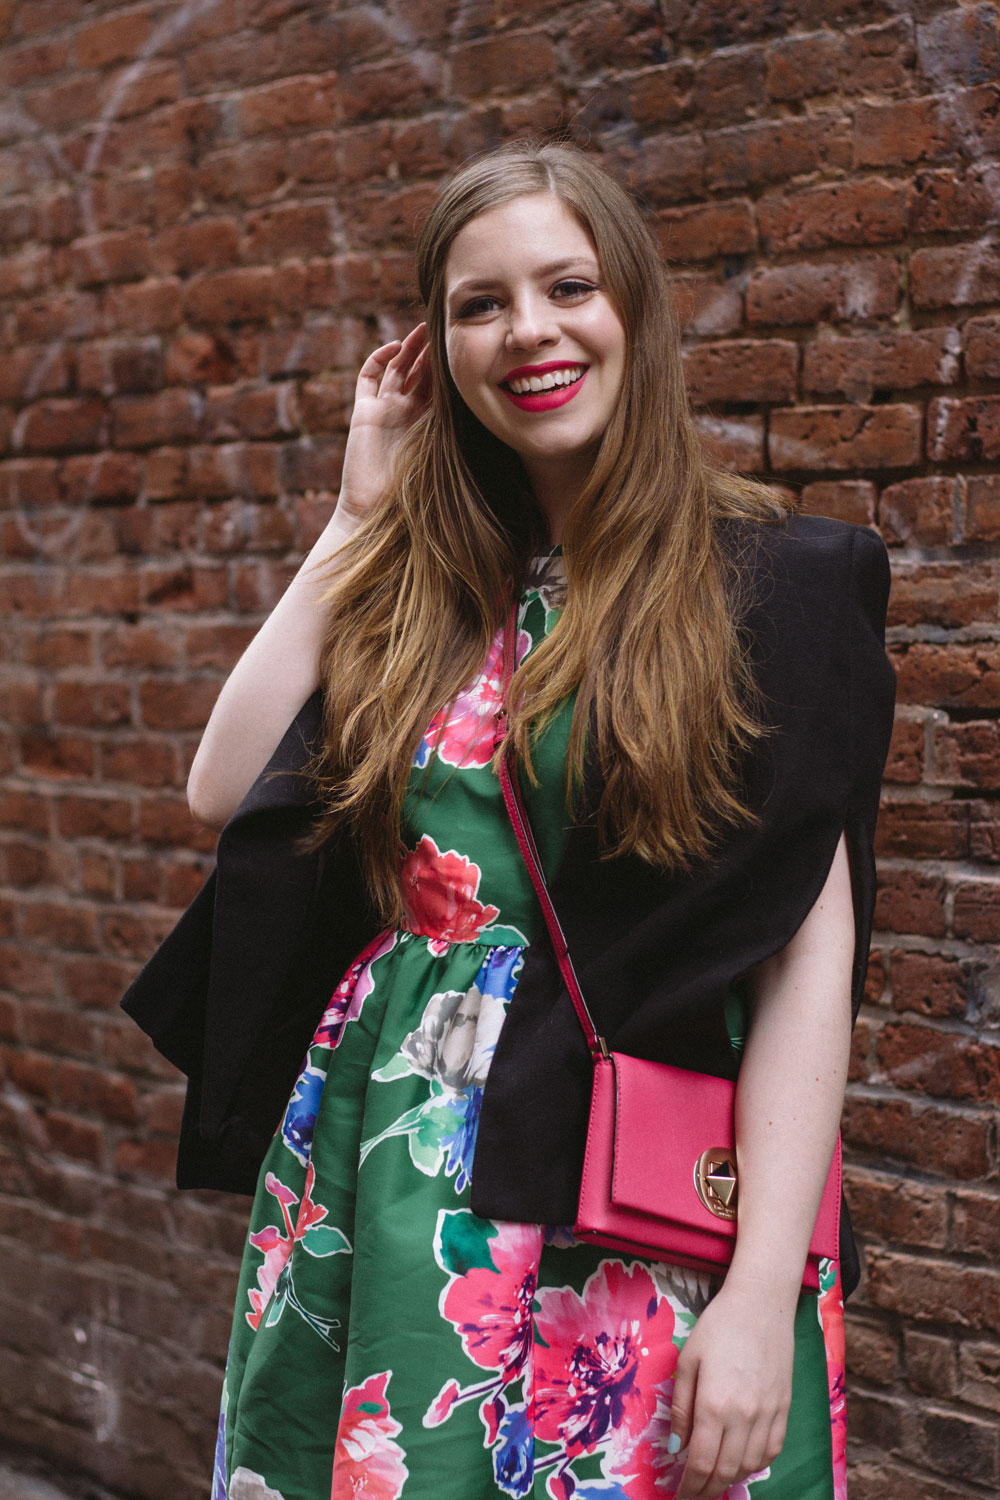 Spring Floral Dress with Cape & Pop of Bright Pink Outfit // Ways to Save at Outlet Malls // Hello Rigby Seattle Fashion & Style Blog